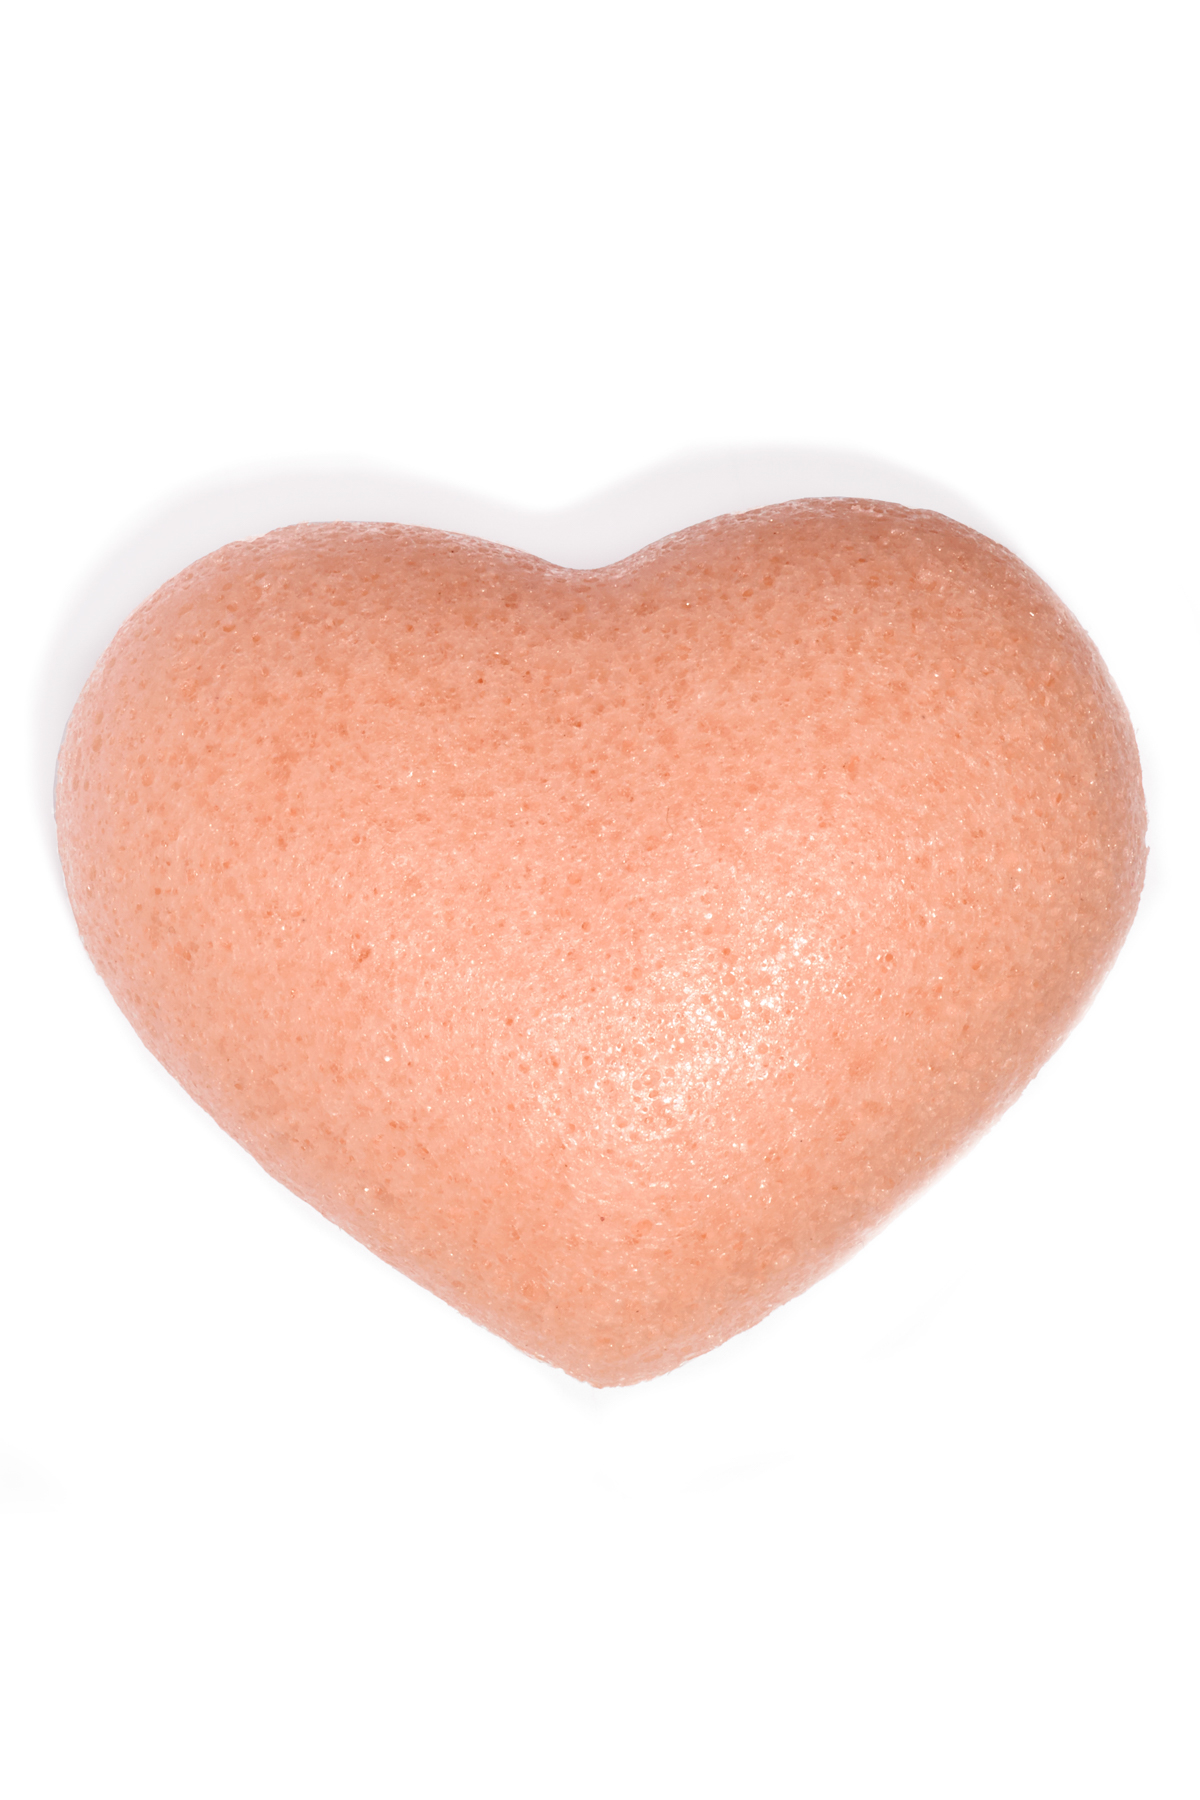 The Cleansing Sponge Rose Clay Heart - Pink 2